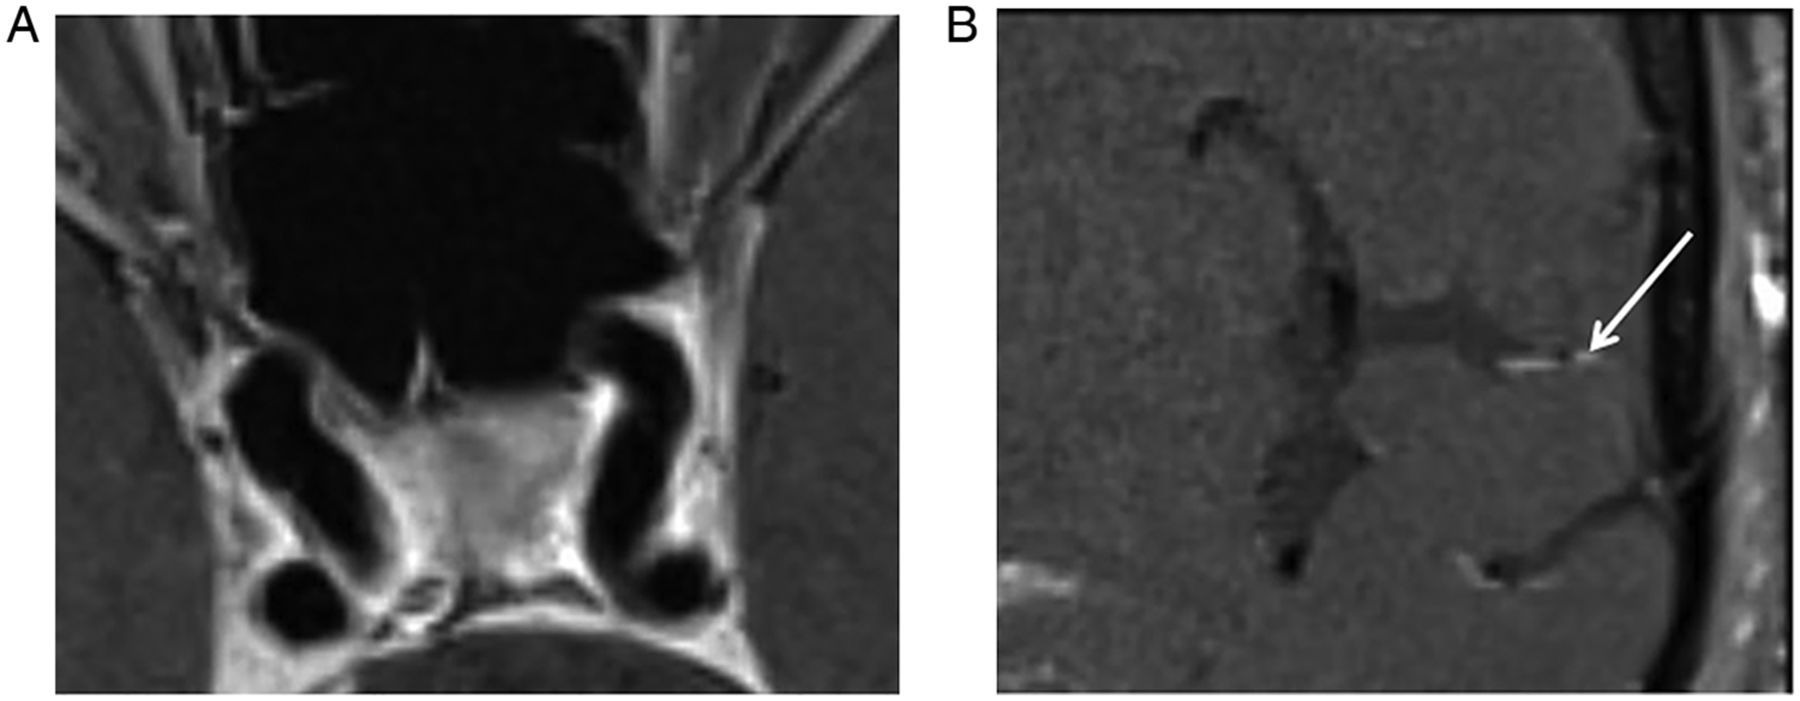 Early experience in high-resolution MRI for large vessel occlusions